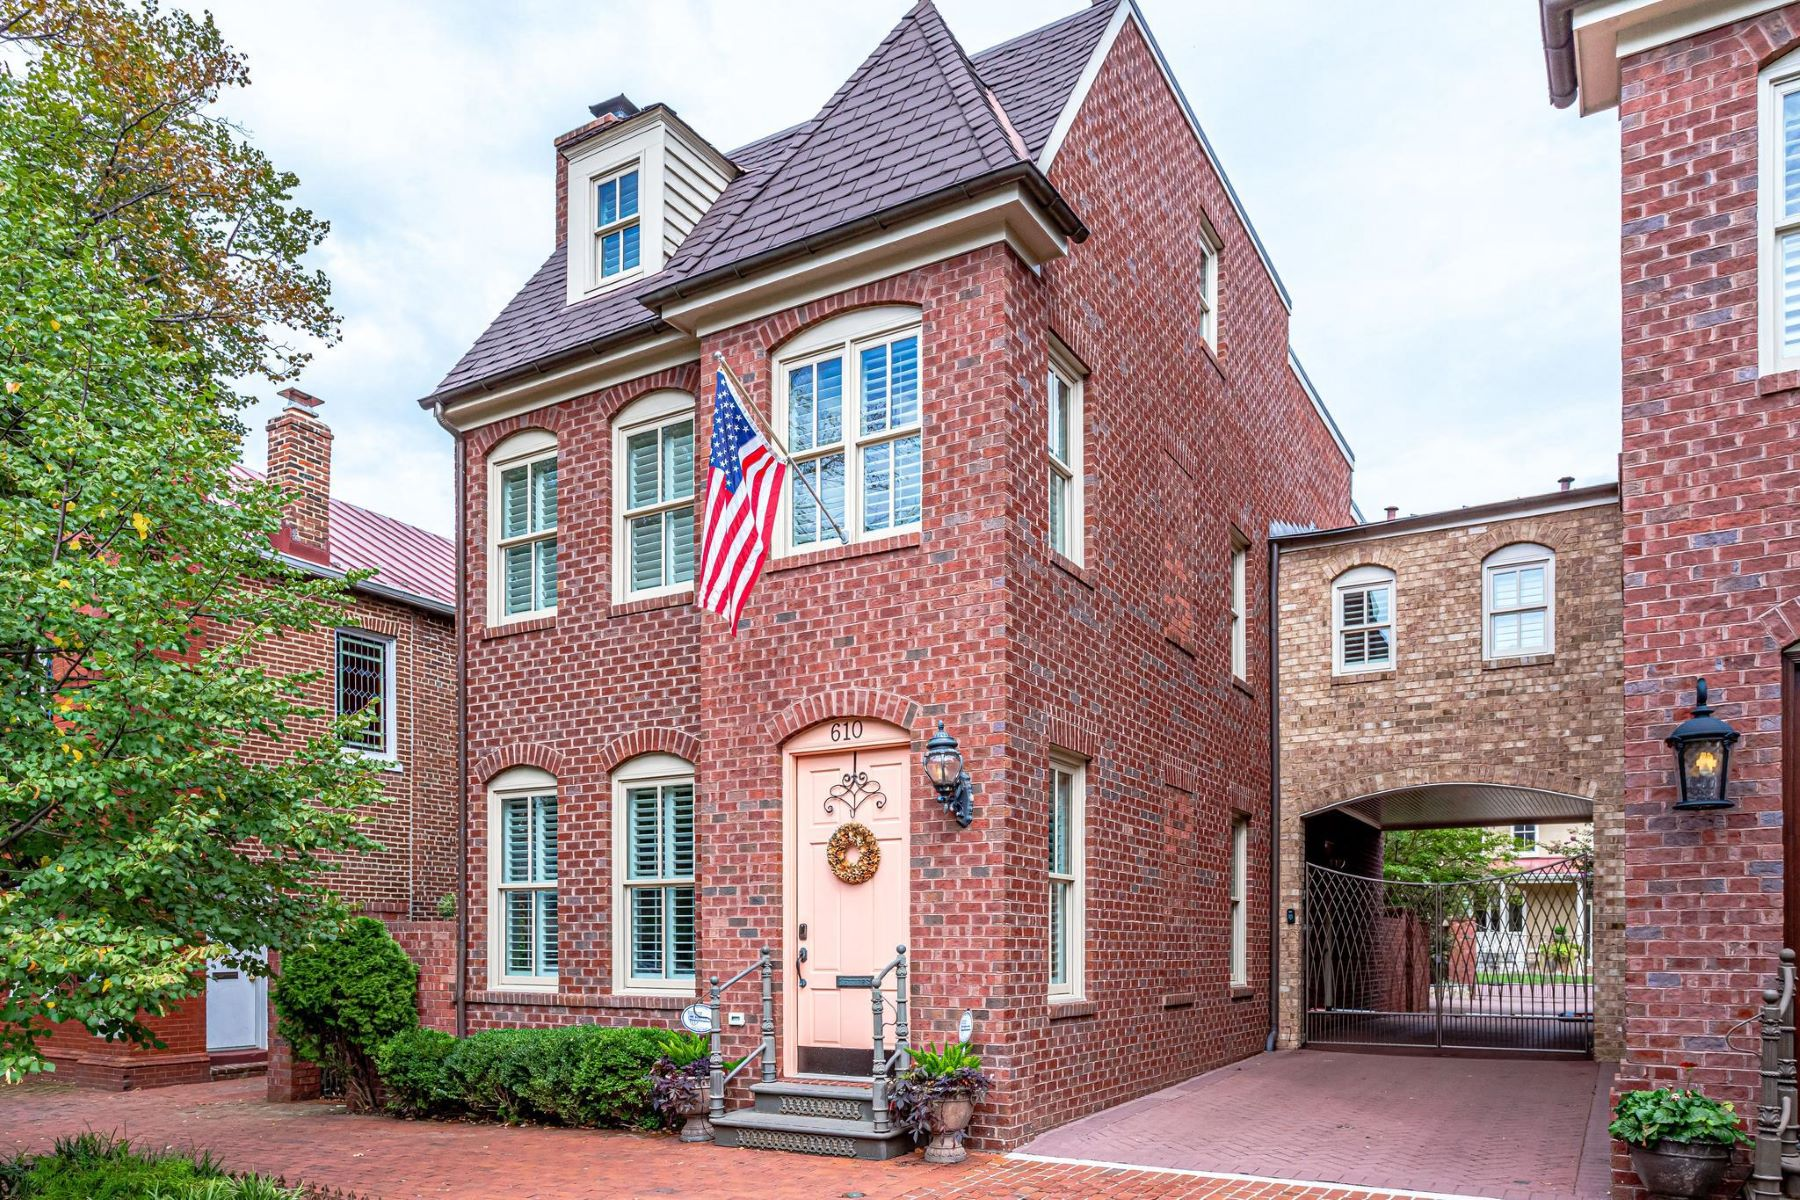 Single Family Homes for Active at 610 S Washington St Alexandria, Virginia 22314 United States